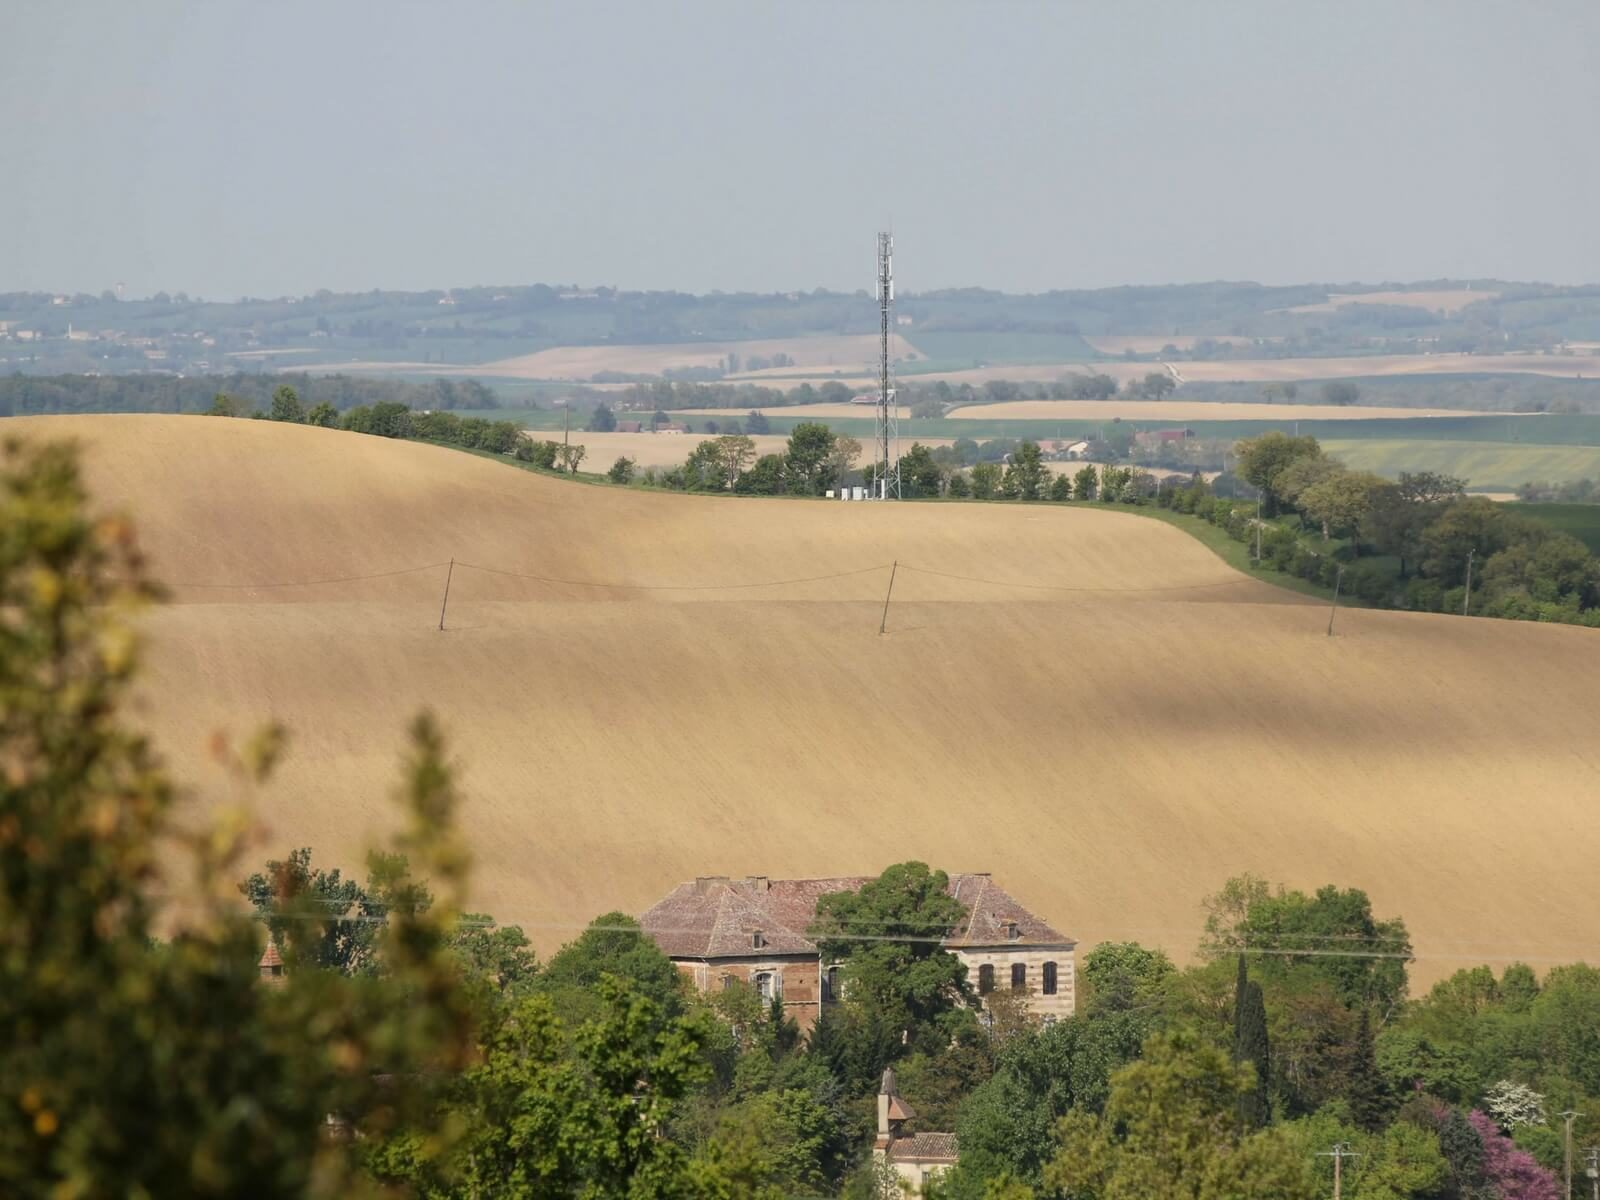 country landscape in the Gers in southern France; the rules of driving in france